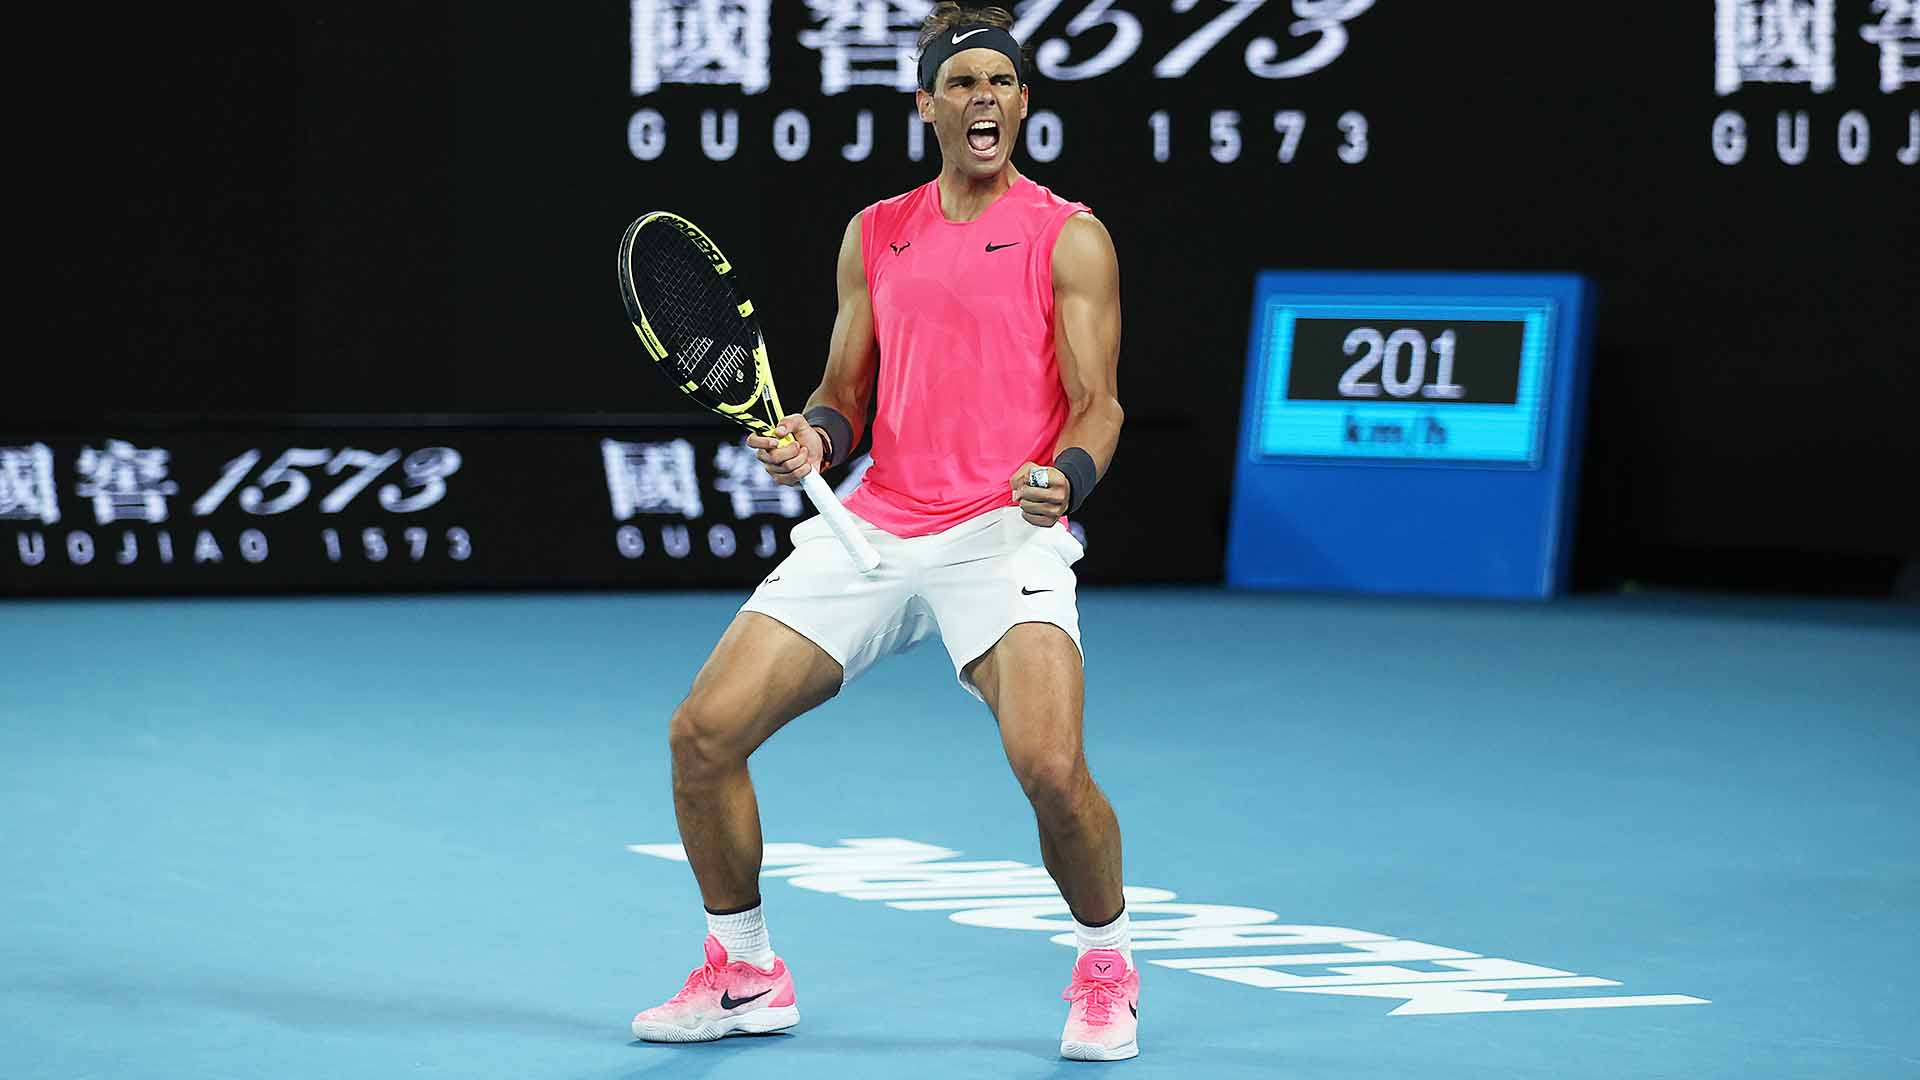 Rafael Nadal is the top seed at the Australian Open.